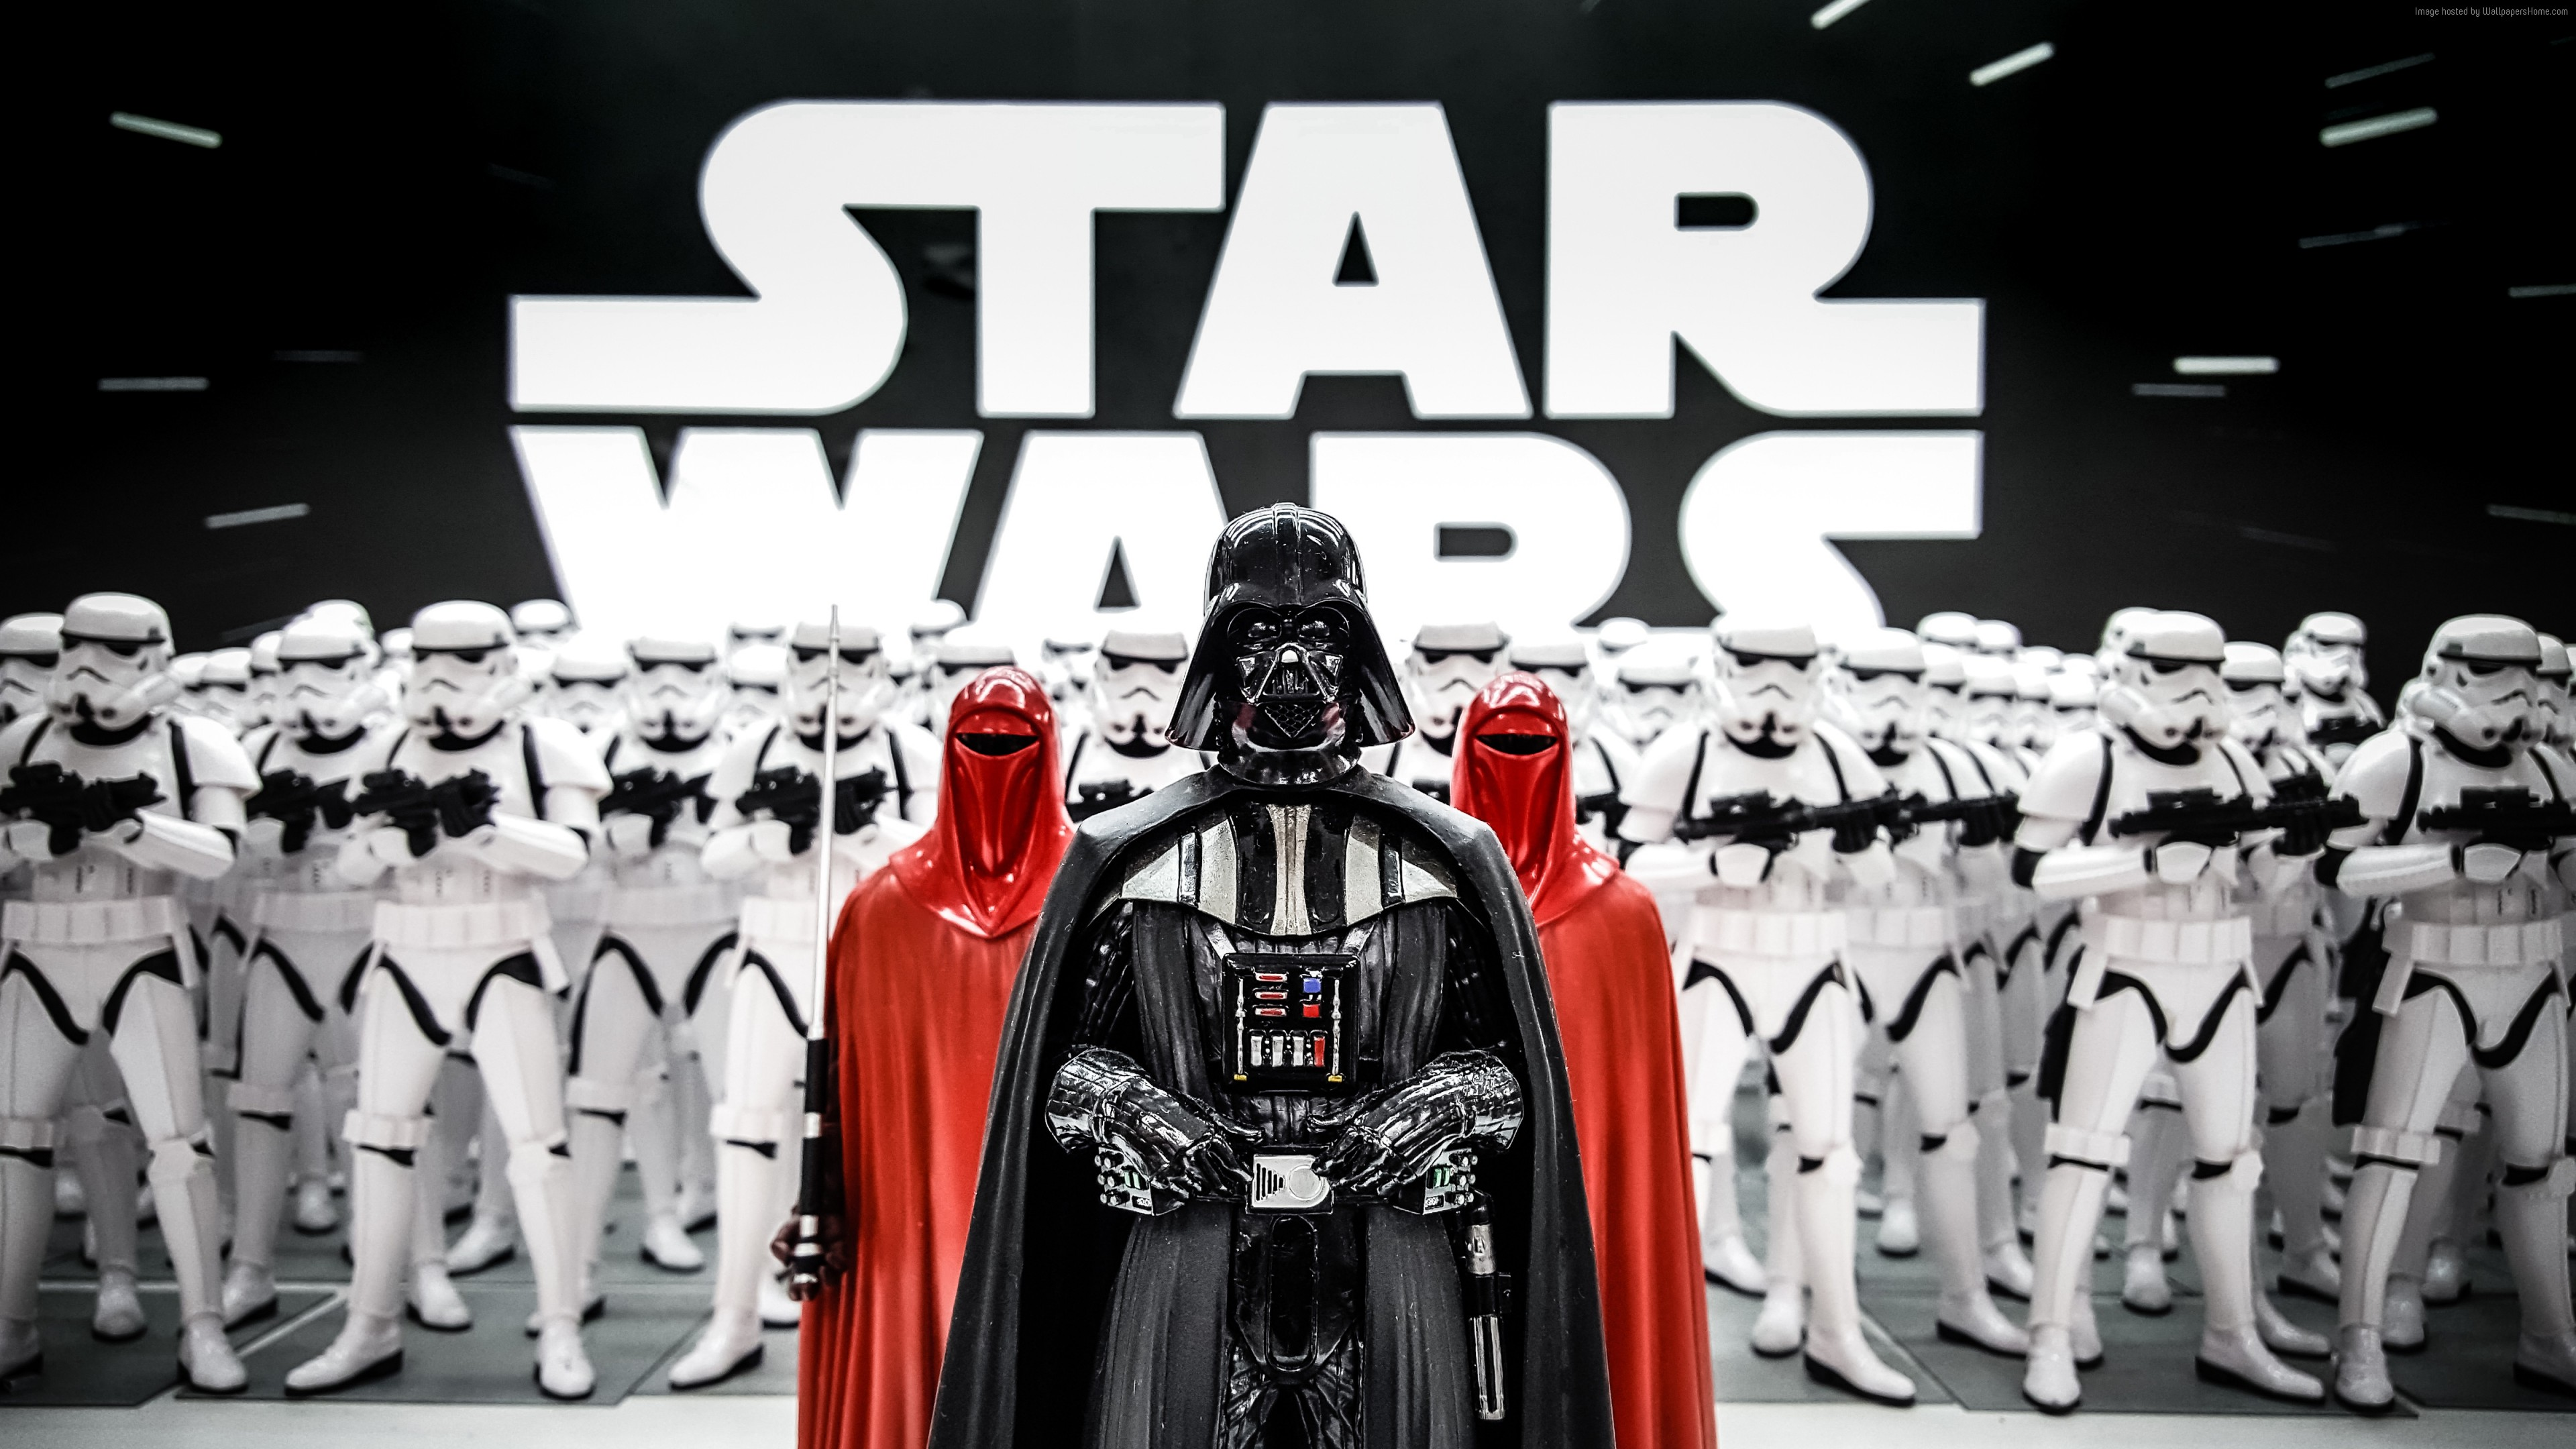 Stock Images Darth Vader, Figurine, Star Wars, Clone Trooper, 5K, Stock Images